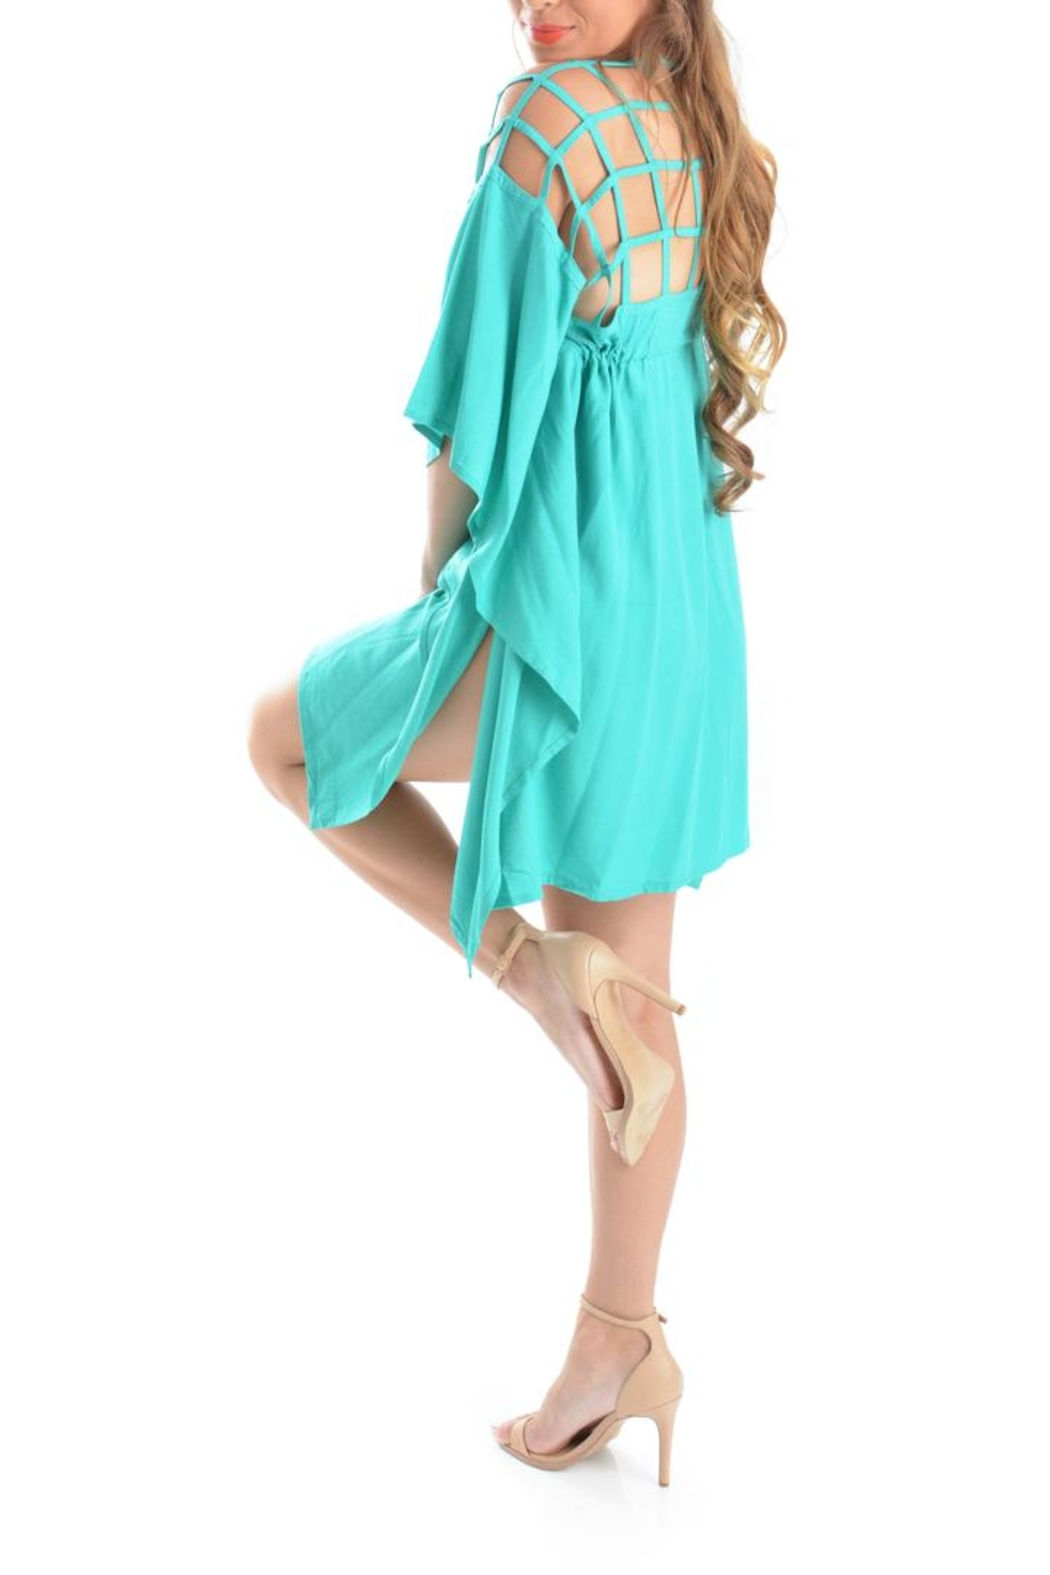 Ava Sky Olgie Caged Tunic - Front Cropped Image